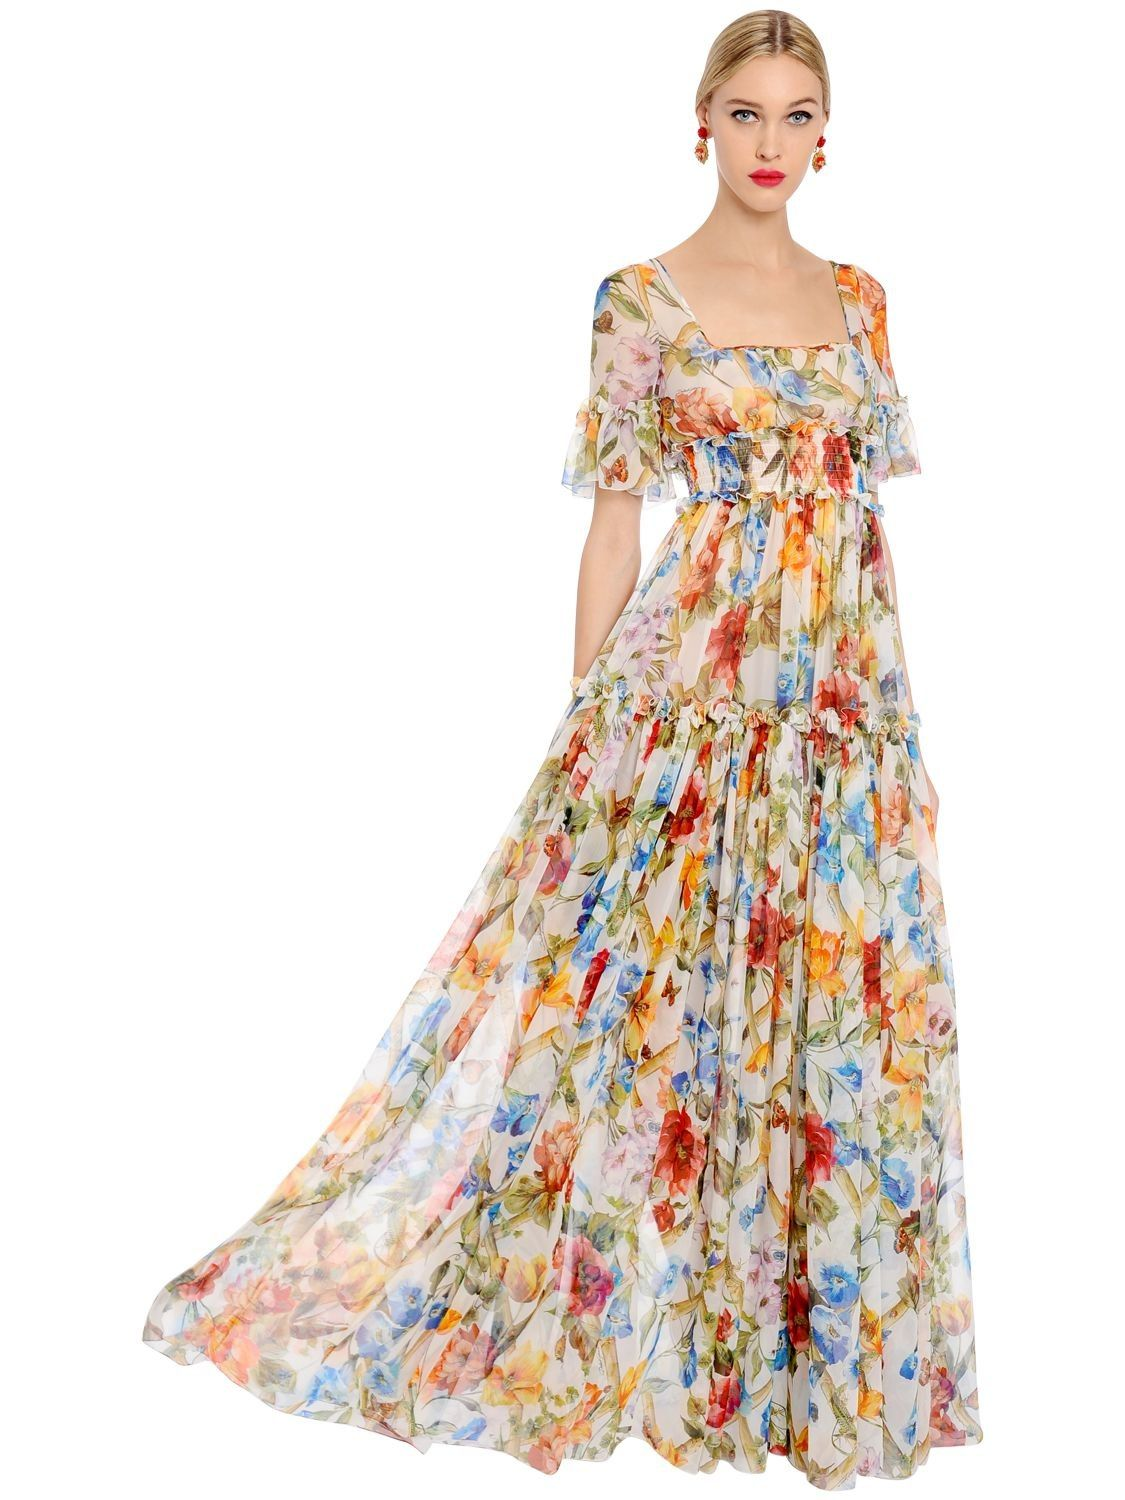 Shaffon Floral Dress with Sash